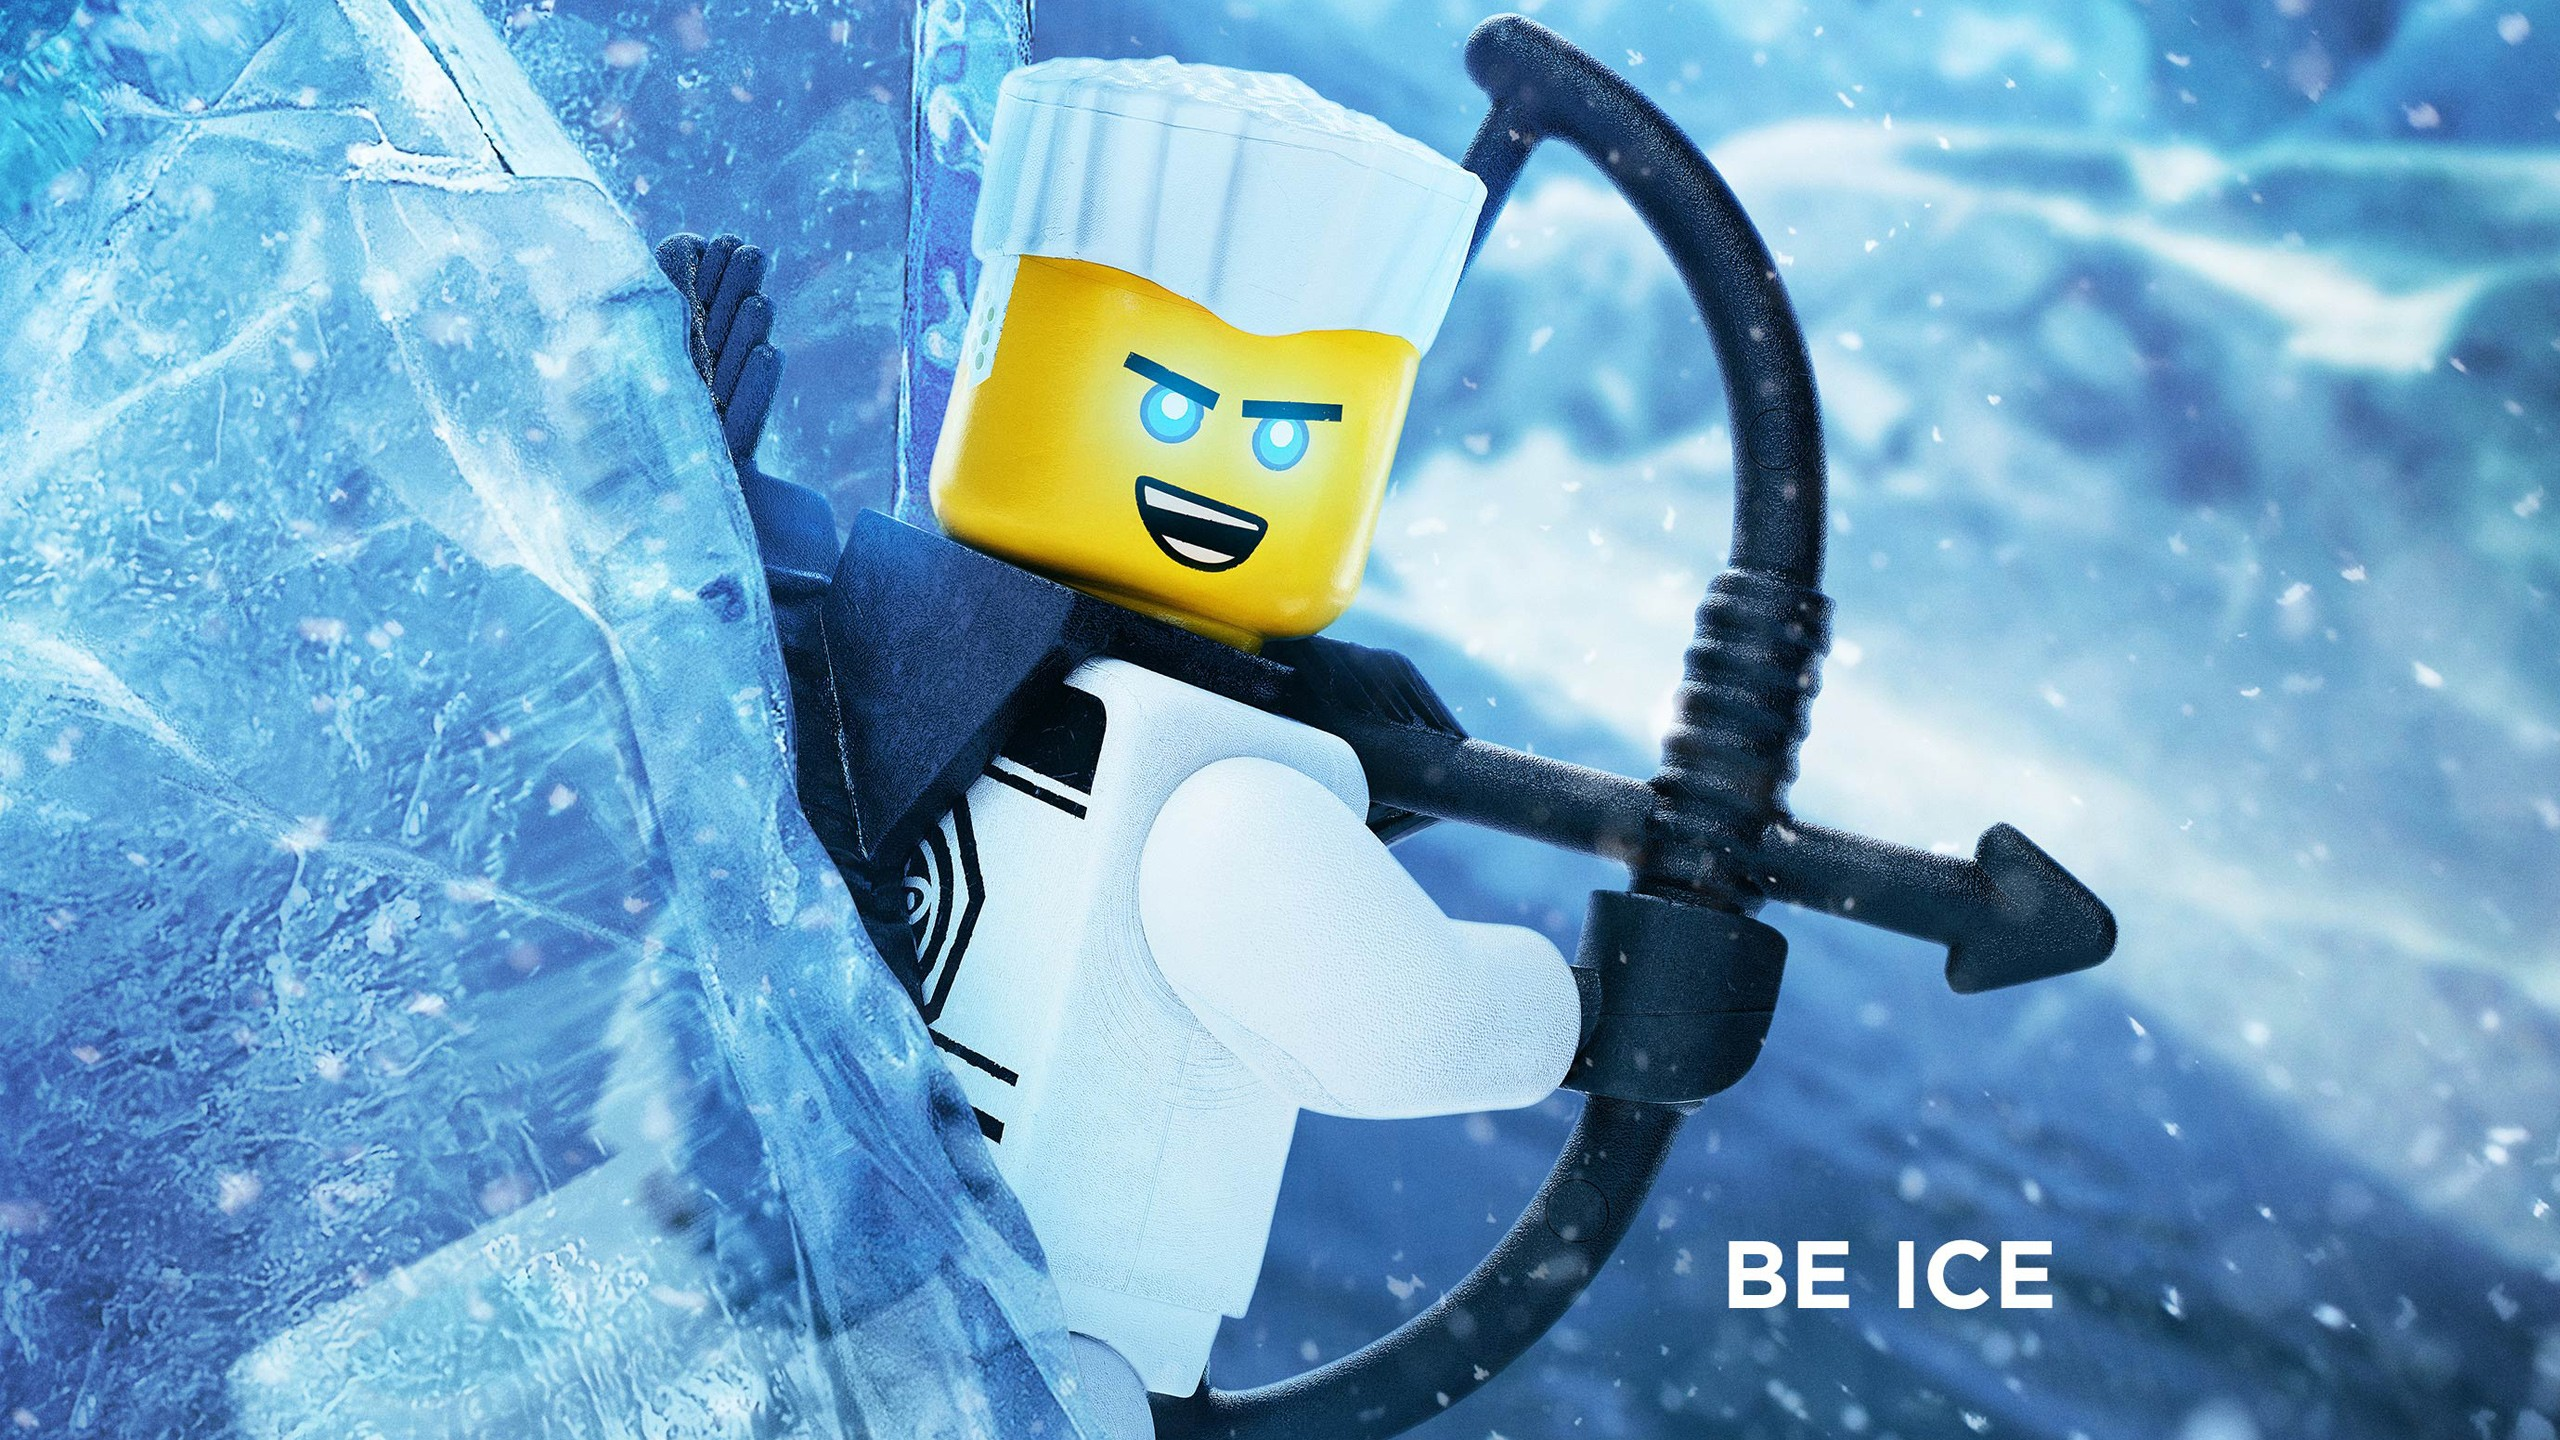 Download Black Wallpaper For Android Zane Be Ice The Lego Ninjago Movie 2017 Wallpapers Hd